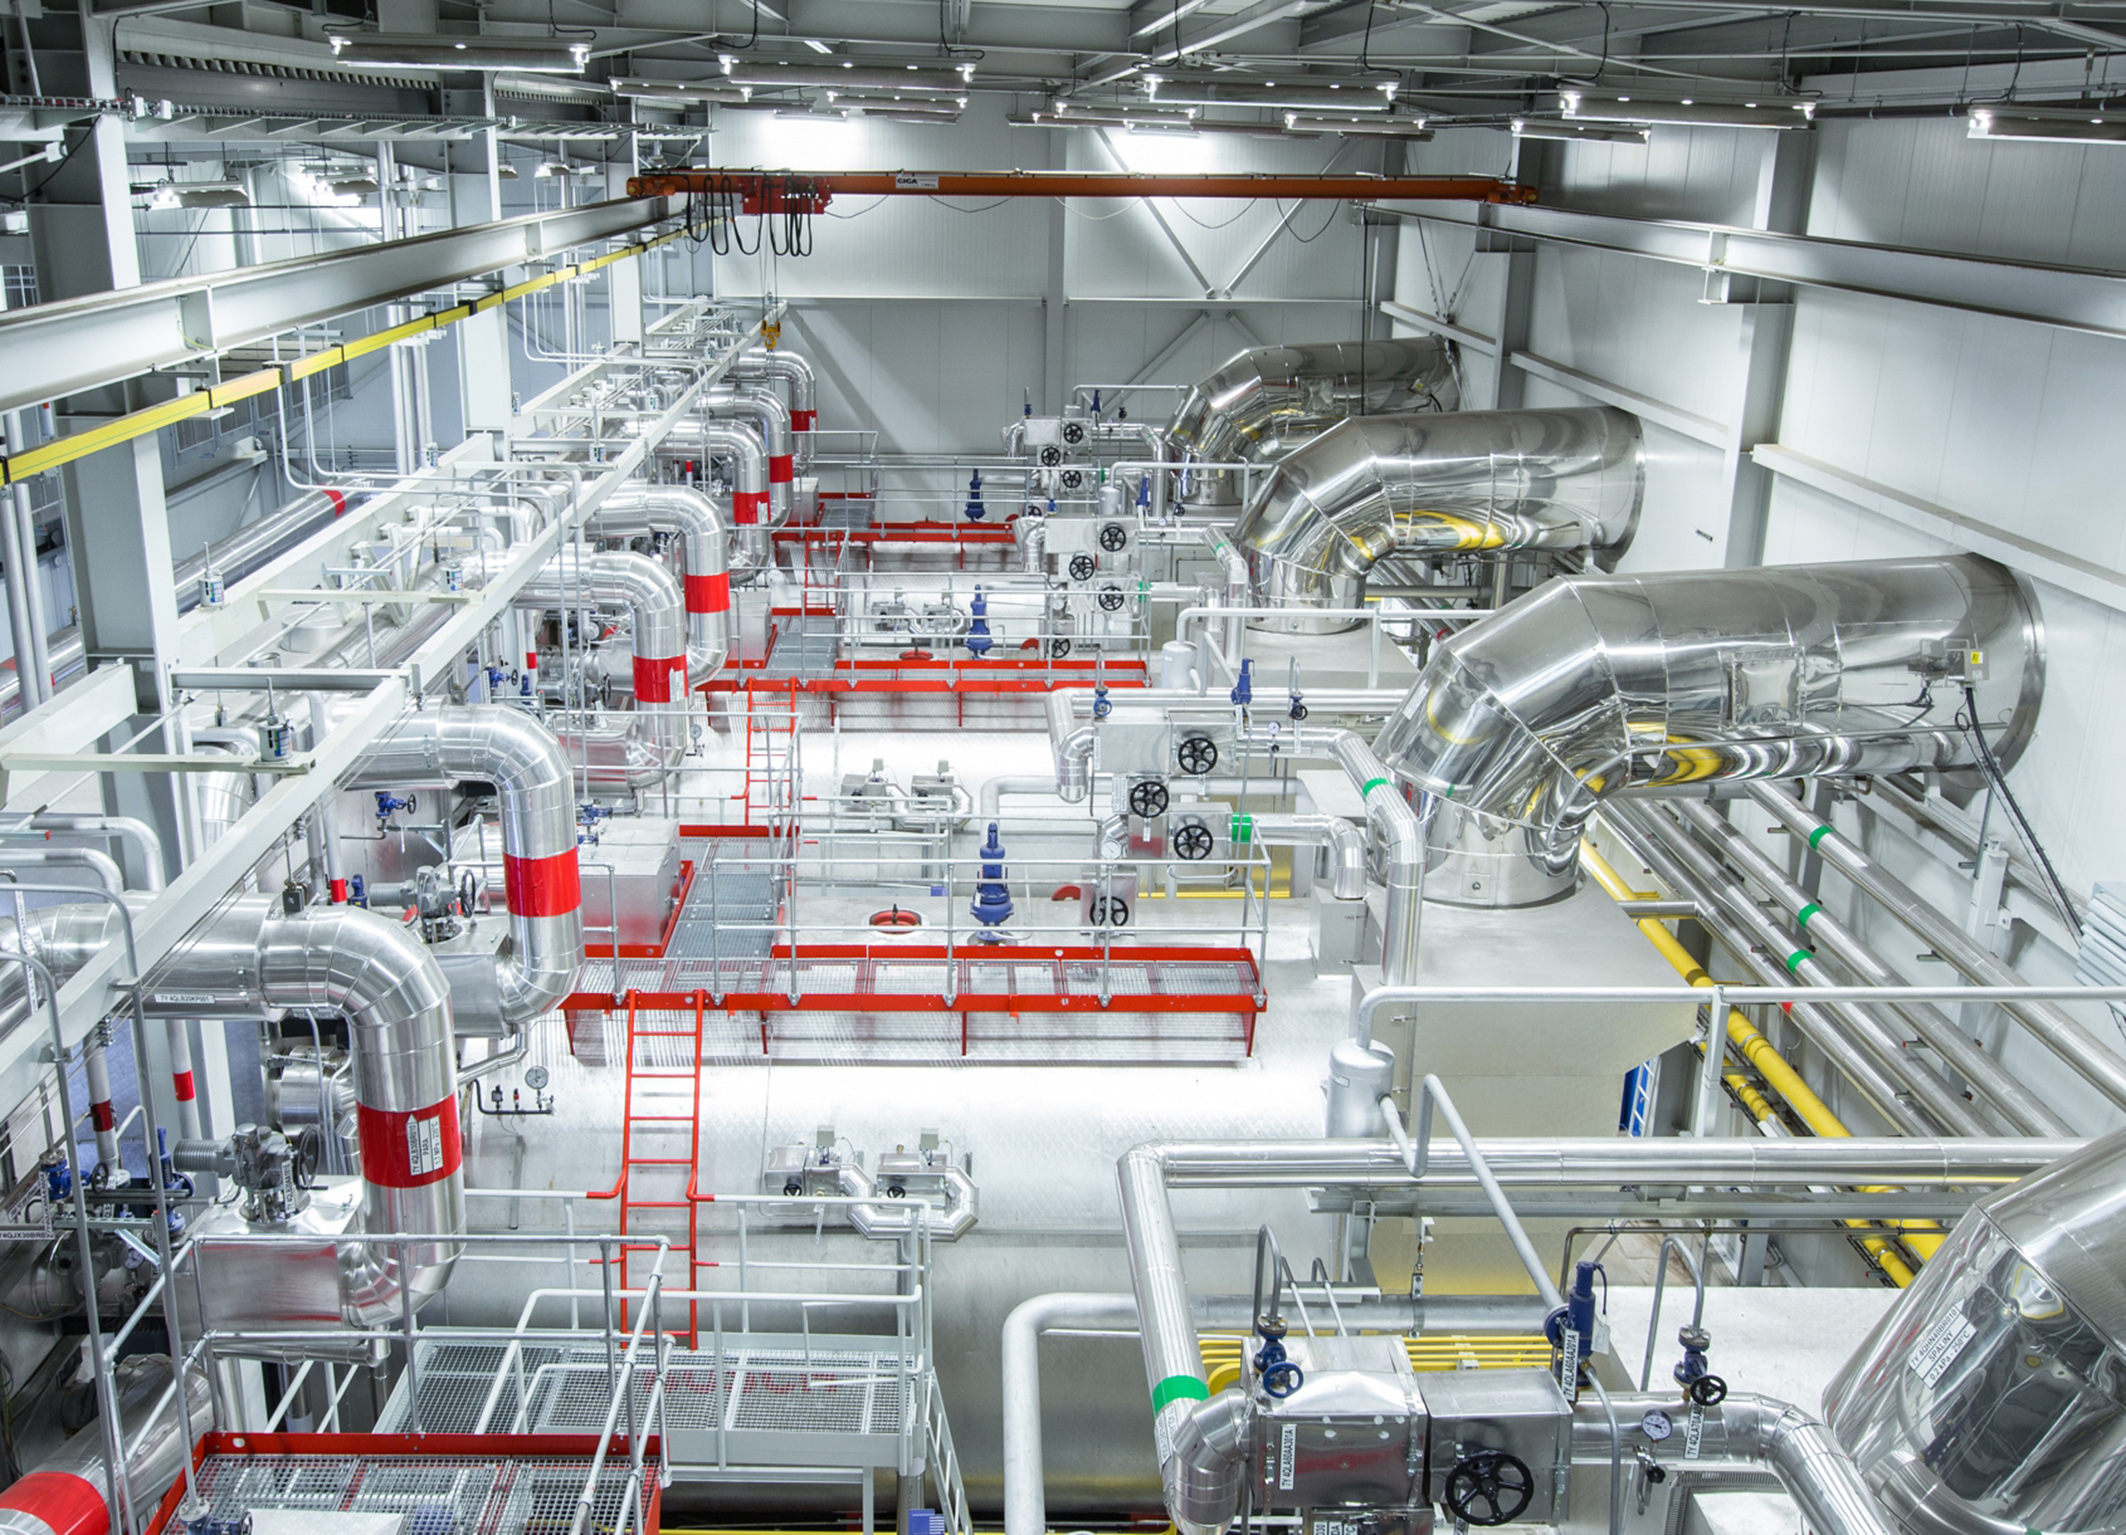 167 tons of superheated steam per hour - Bosch Media Service